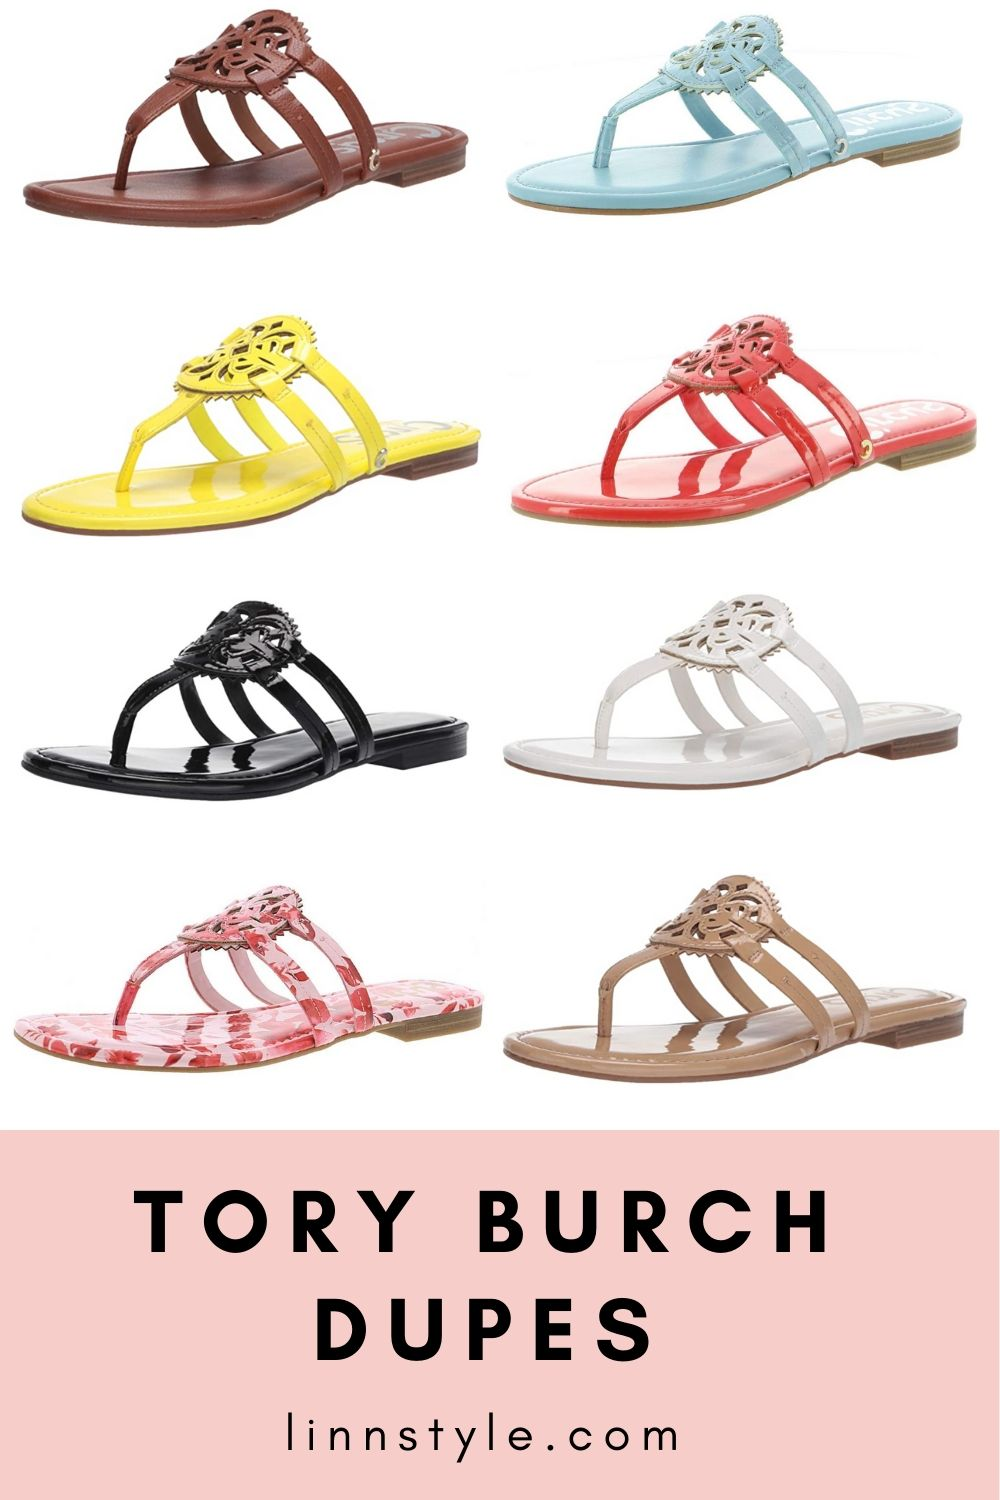 Tory Burch Miller Sandal Dupes on Amazon | Linn Style by Jessica Linn